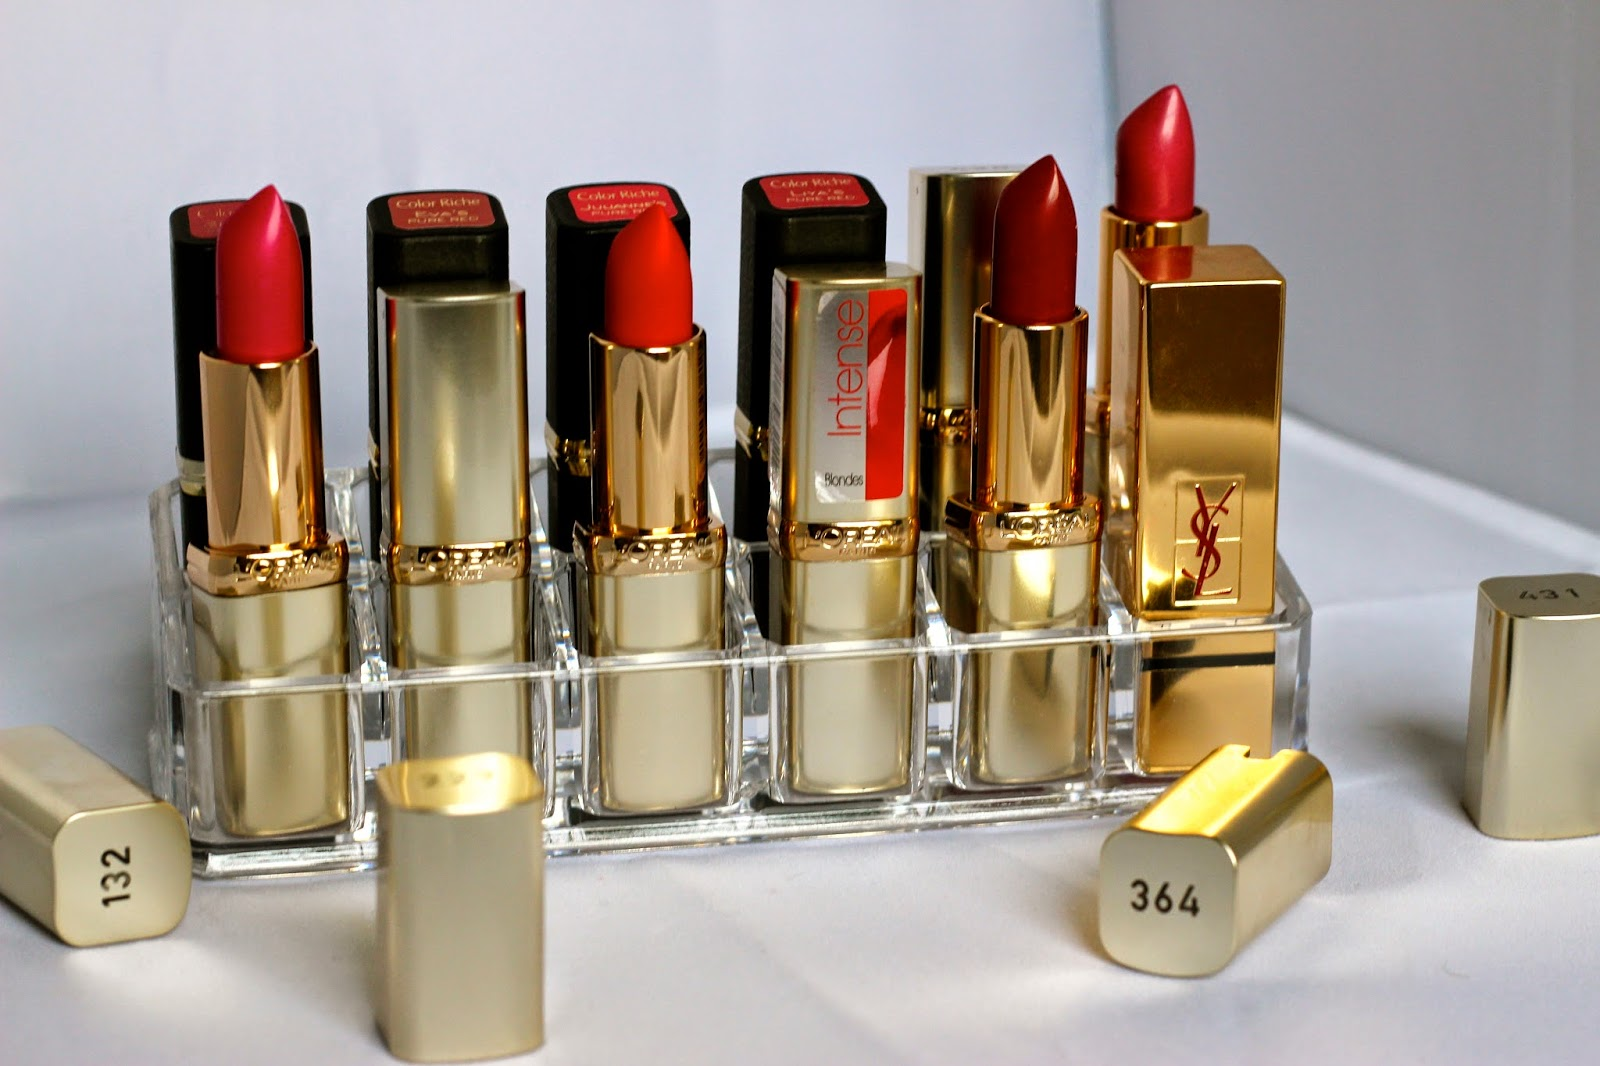 L'oreal lipstick collection